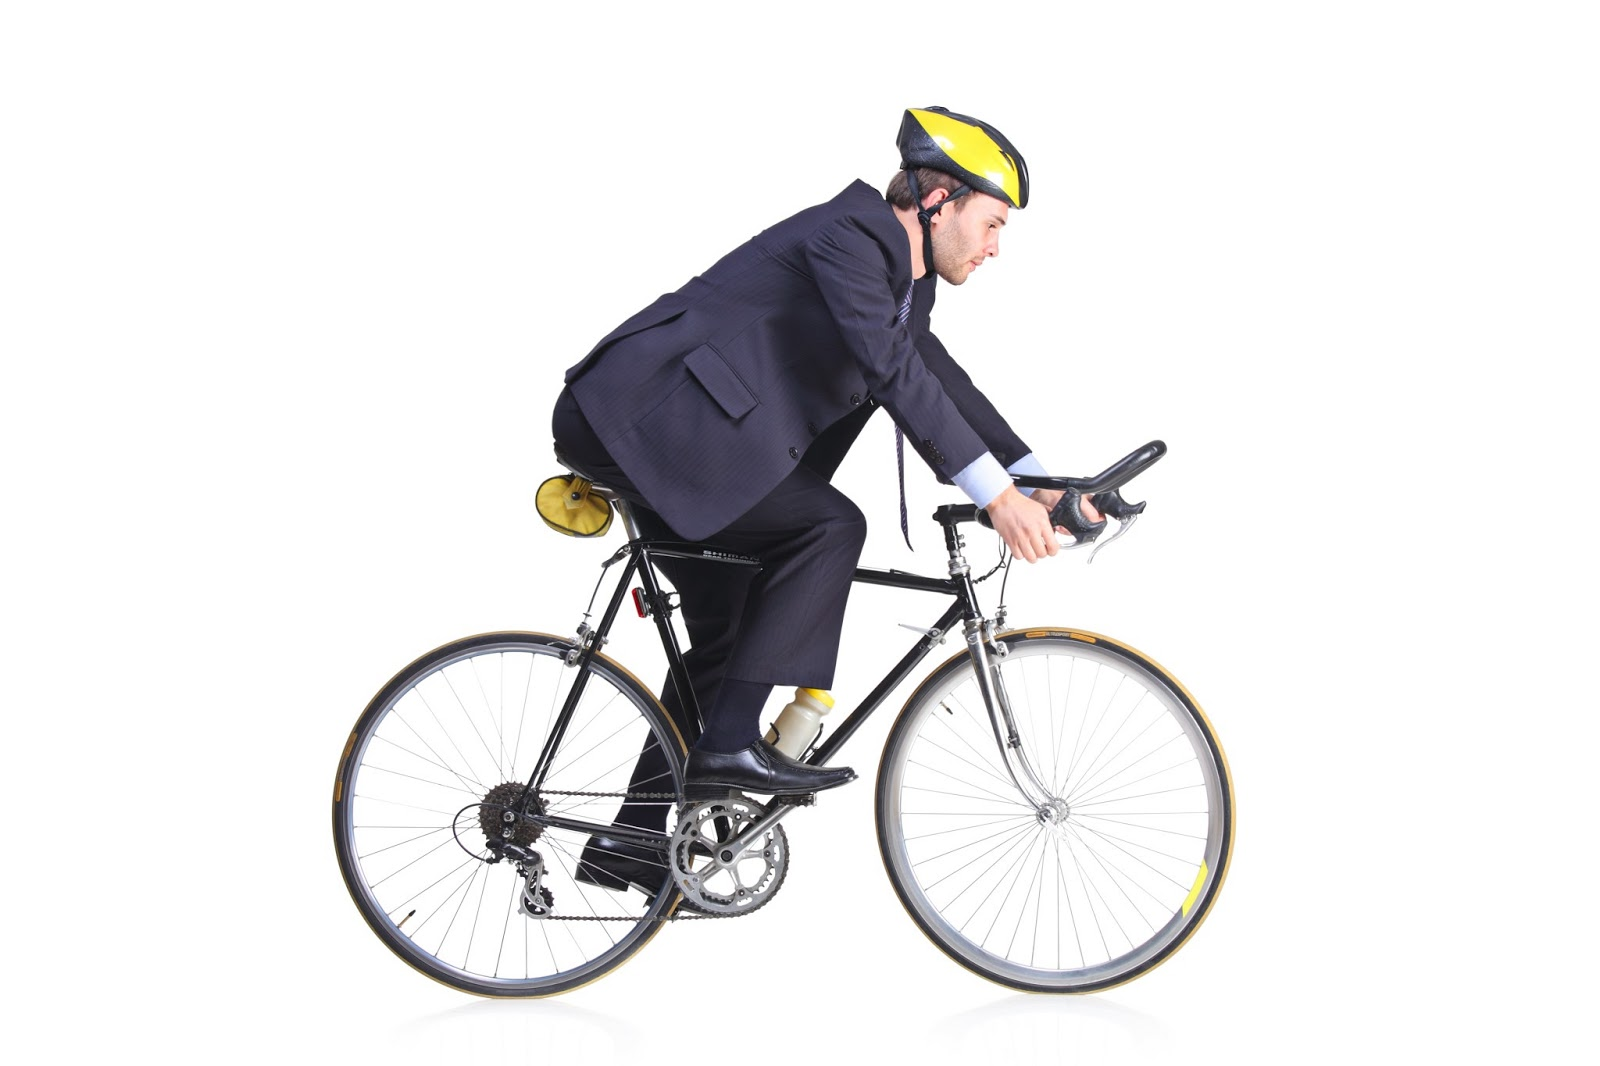 Guy On Bike Pictures to Pin on Pinterest